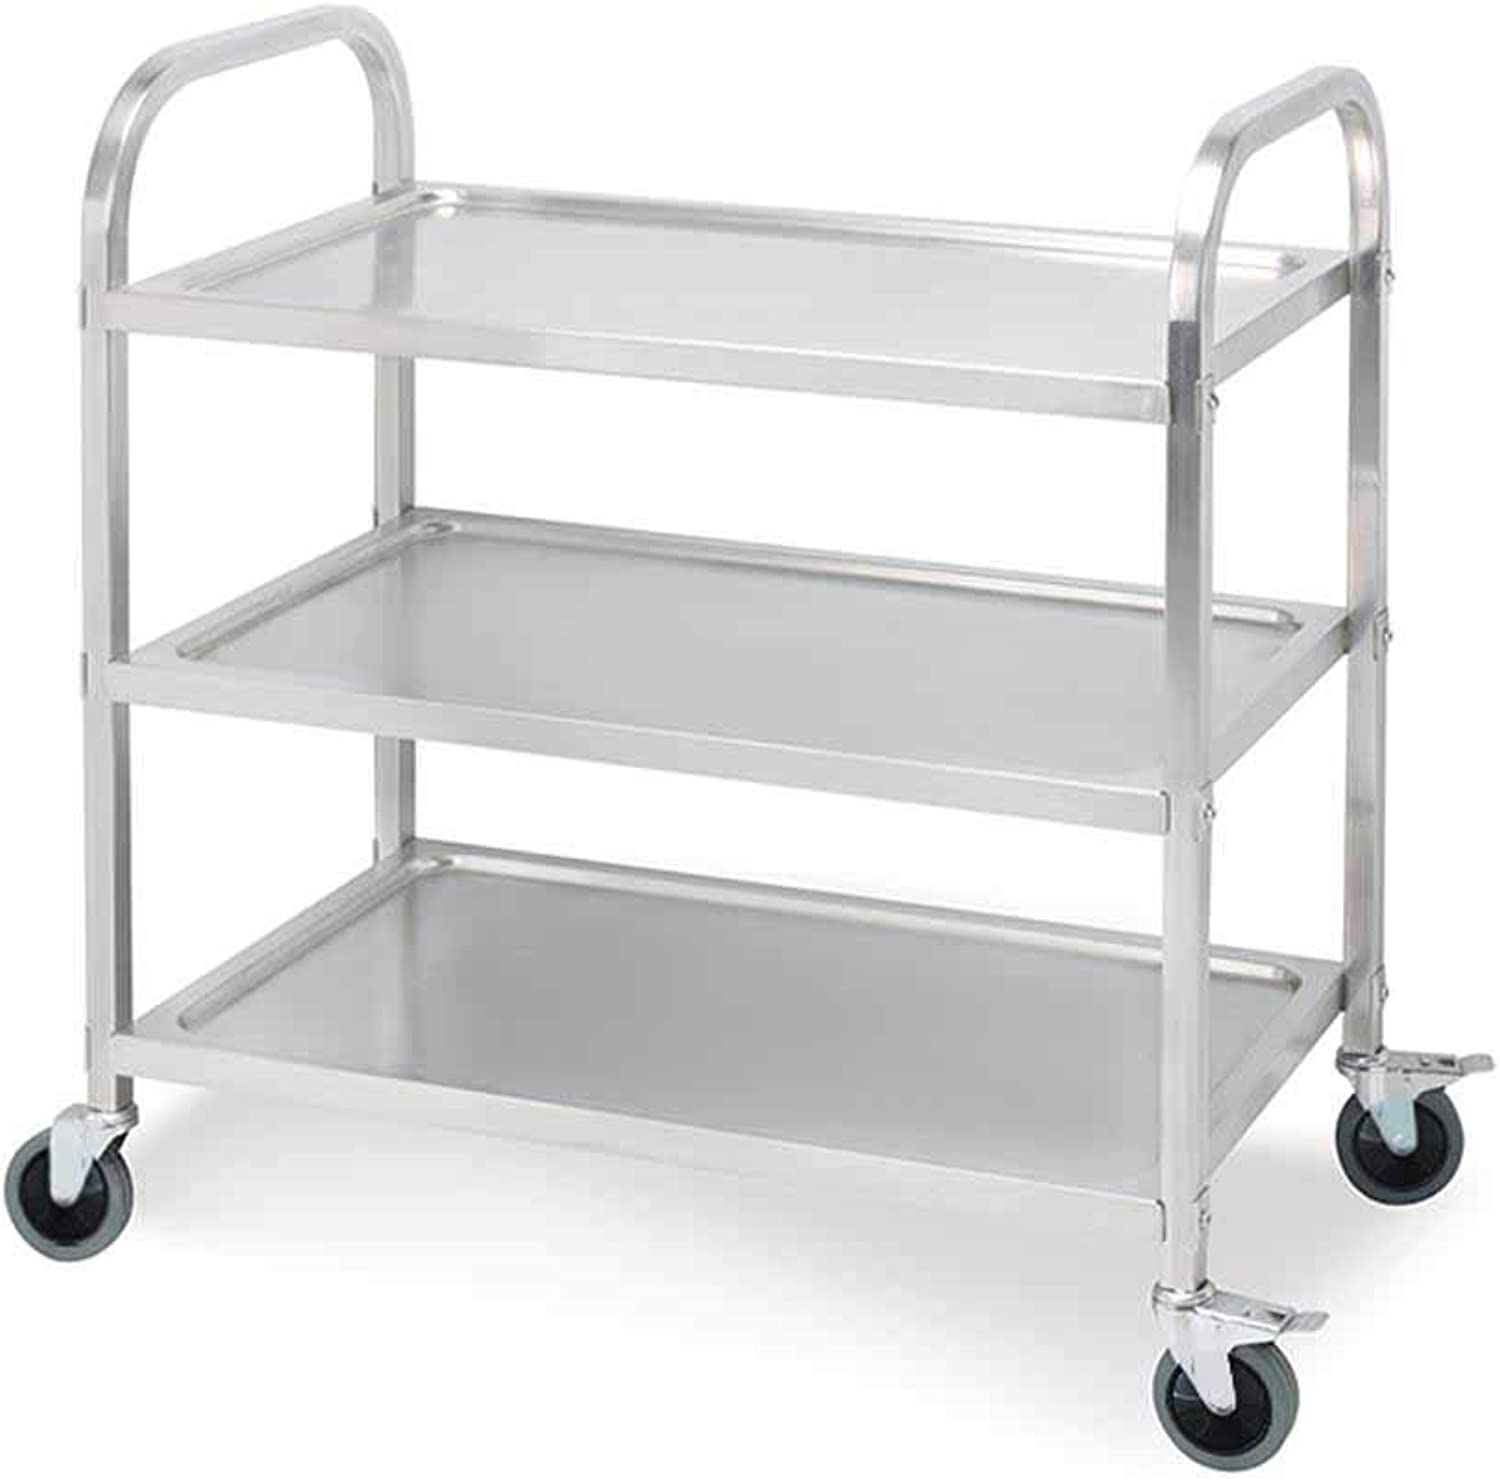 SOGA 3 Tier Stainless Steel Kitchen Dining Food CART Trolley Utility Size 850×450×900